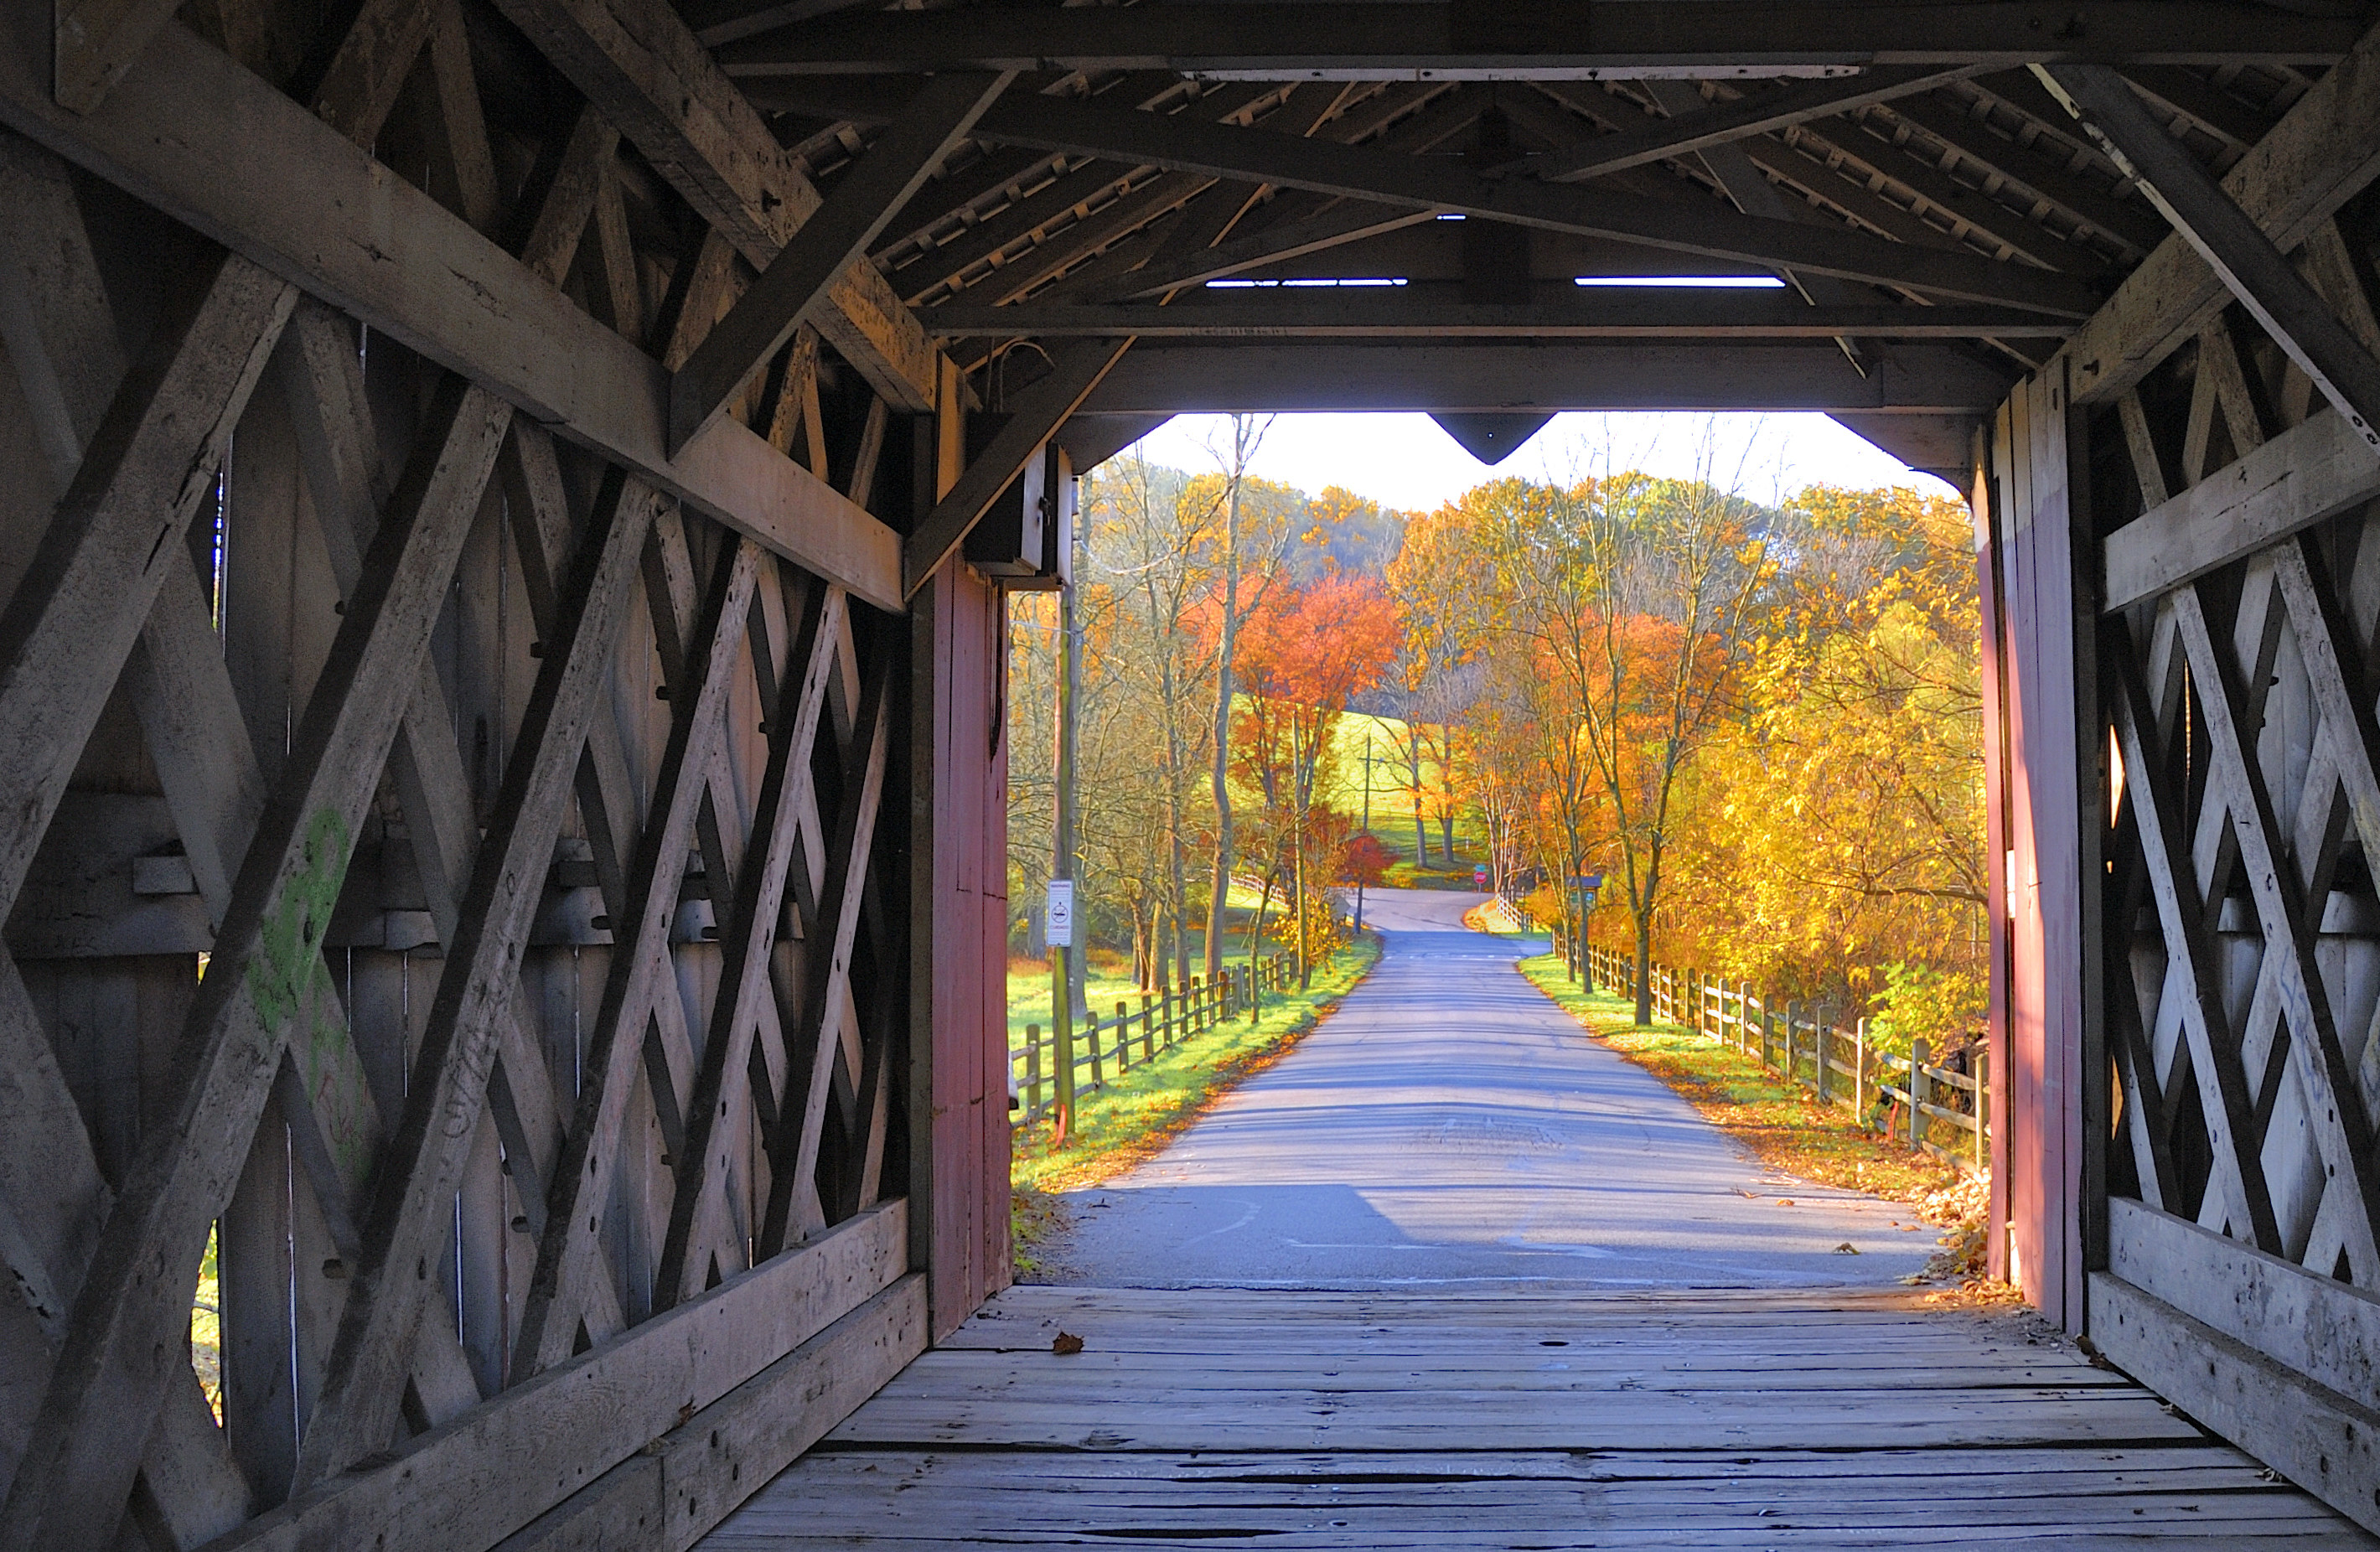 Inside the Ashland covered bridge with autumn trees showing on the other side